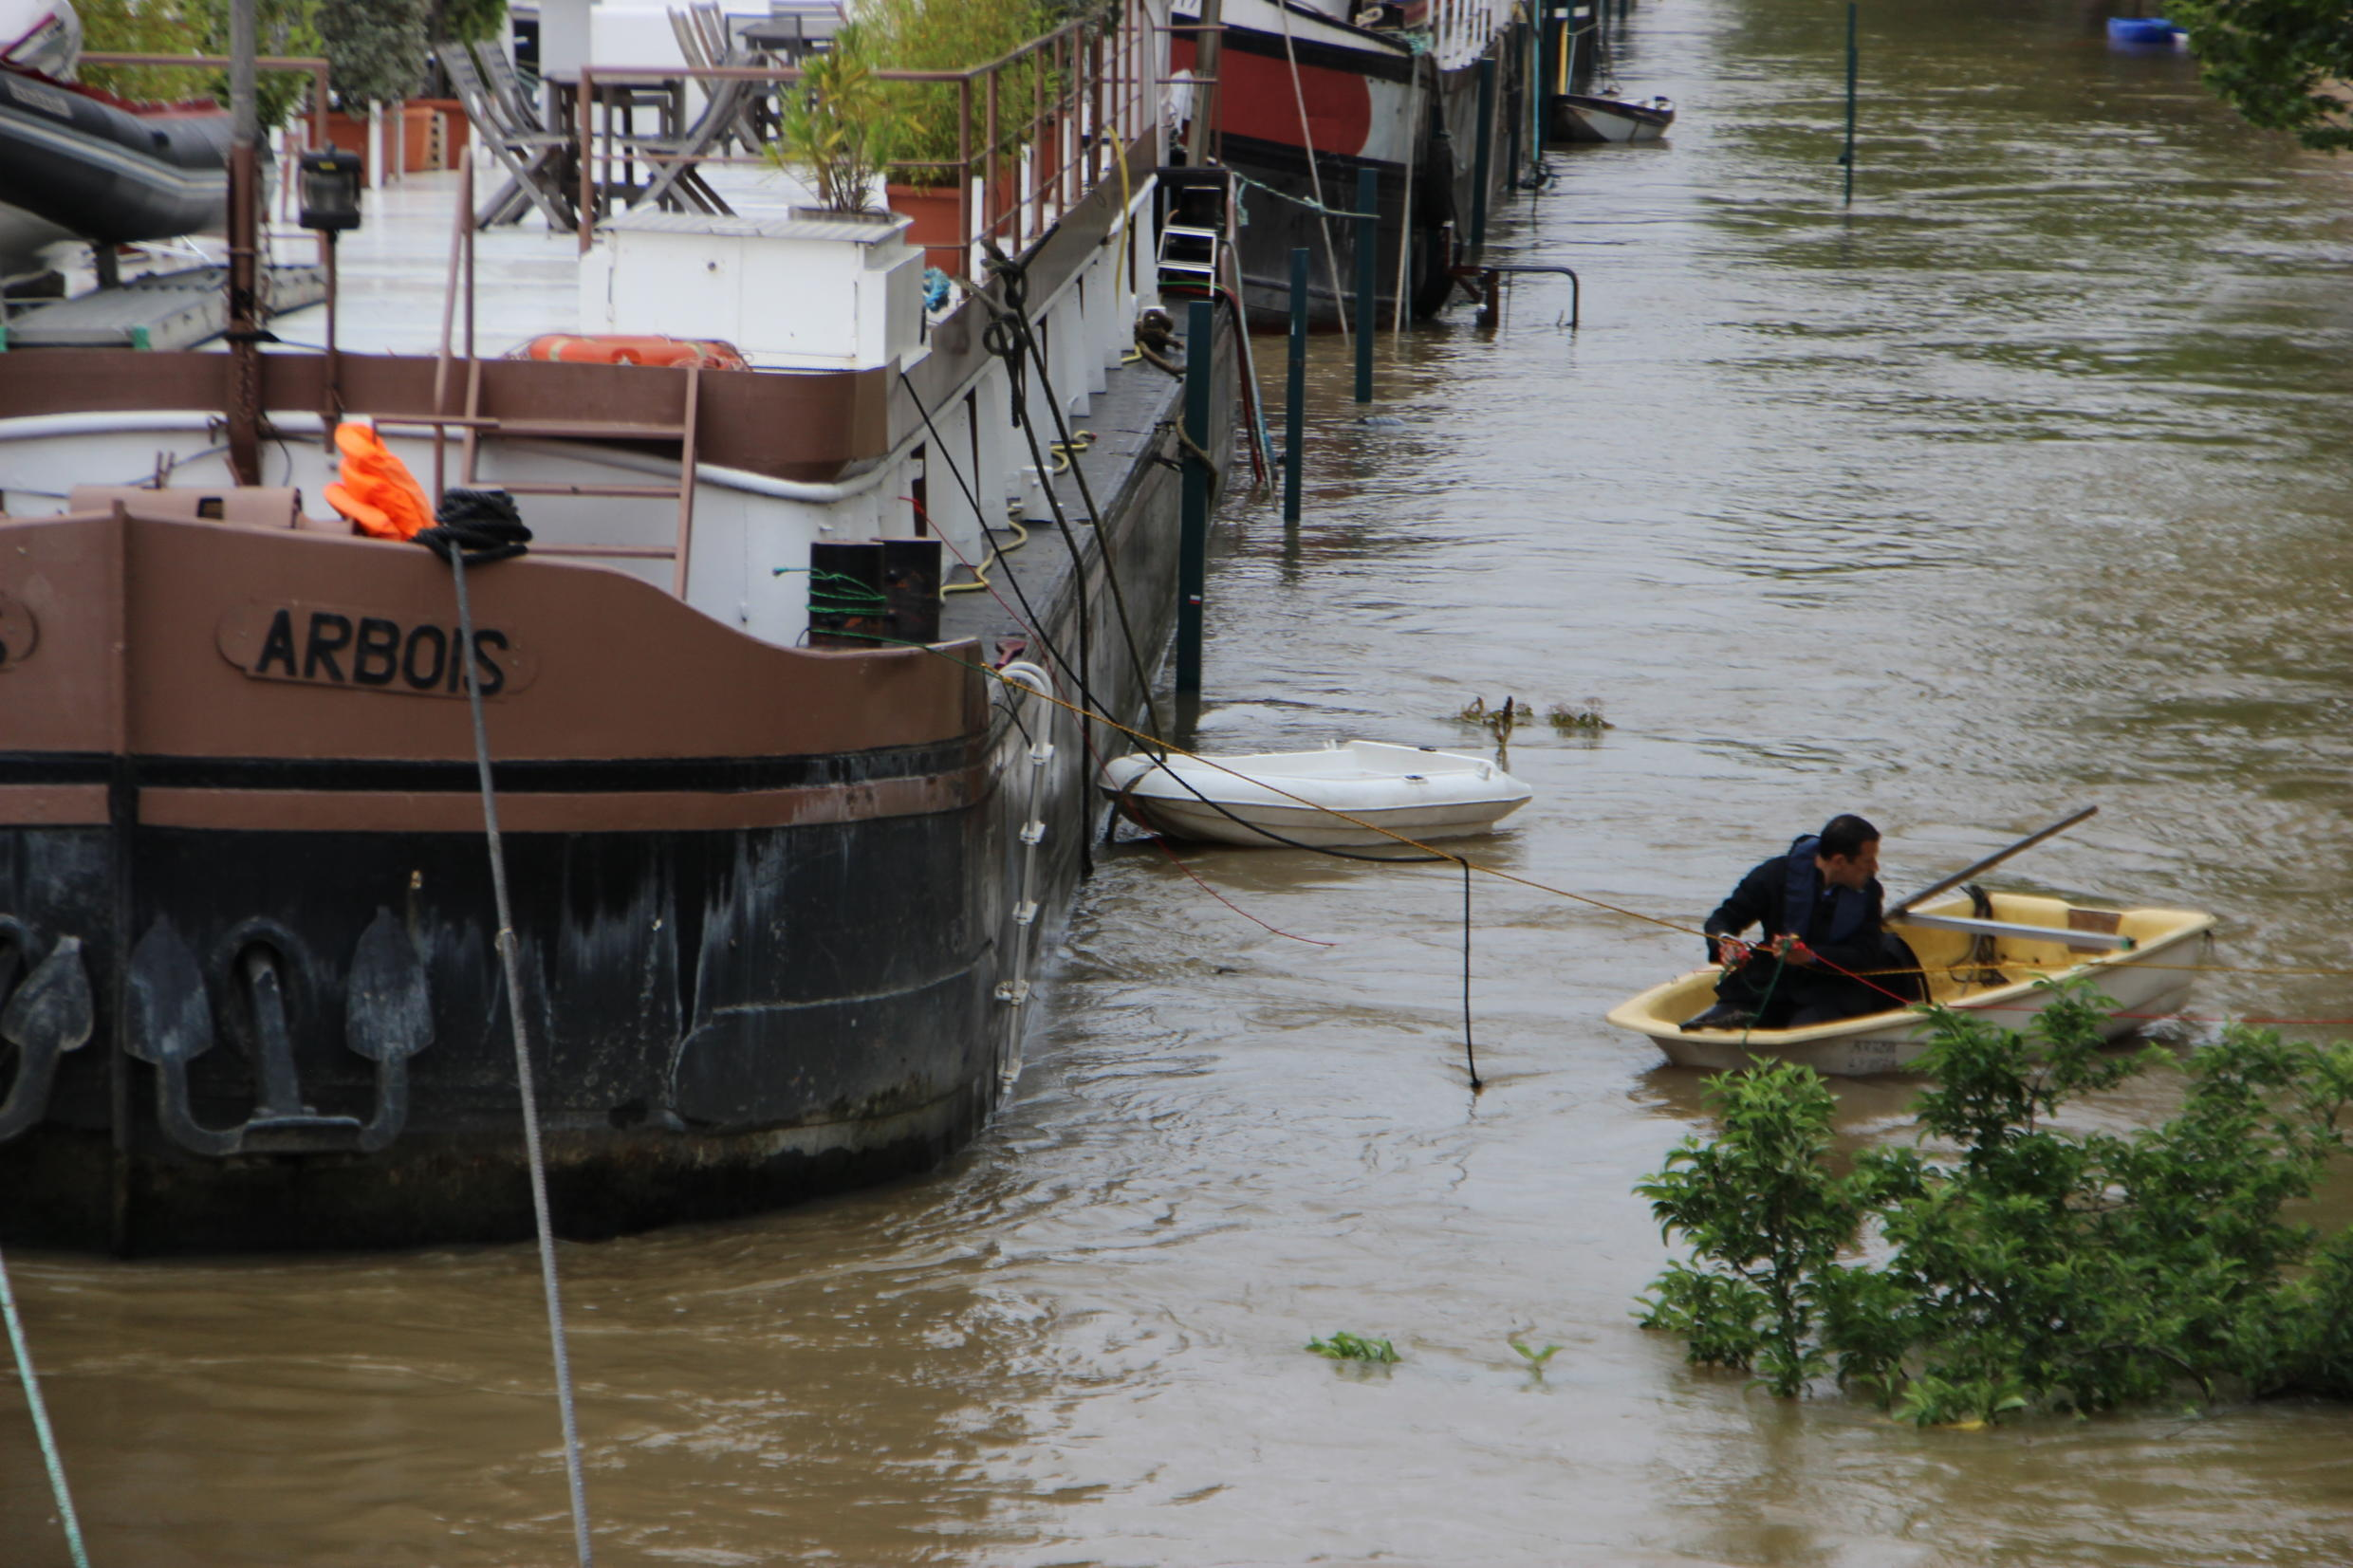 It was not a day like any other in Paris, especially for residents who live on barges docked along the River Seine.